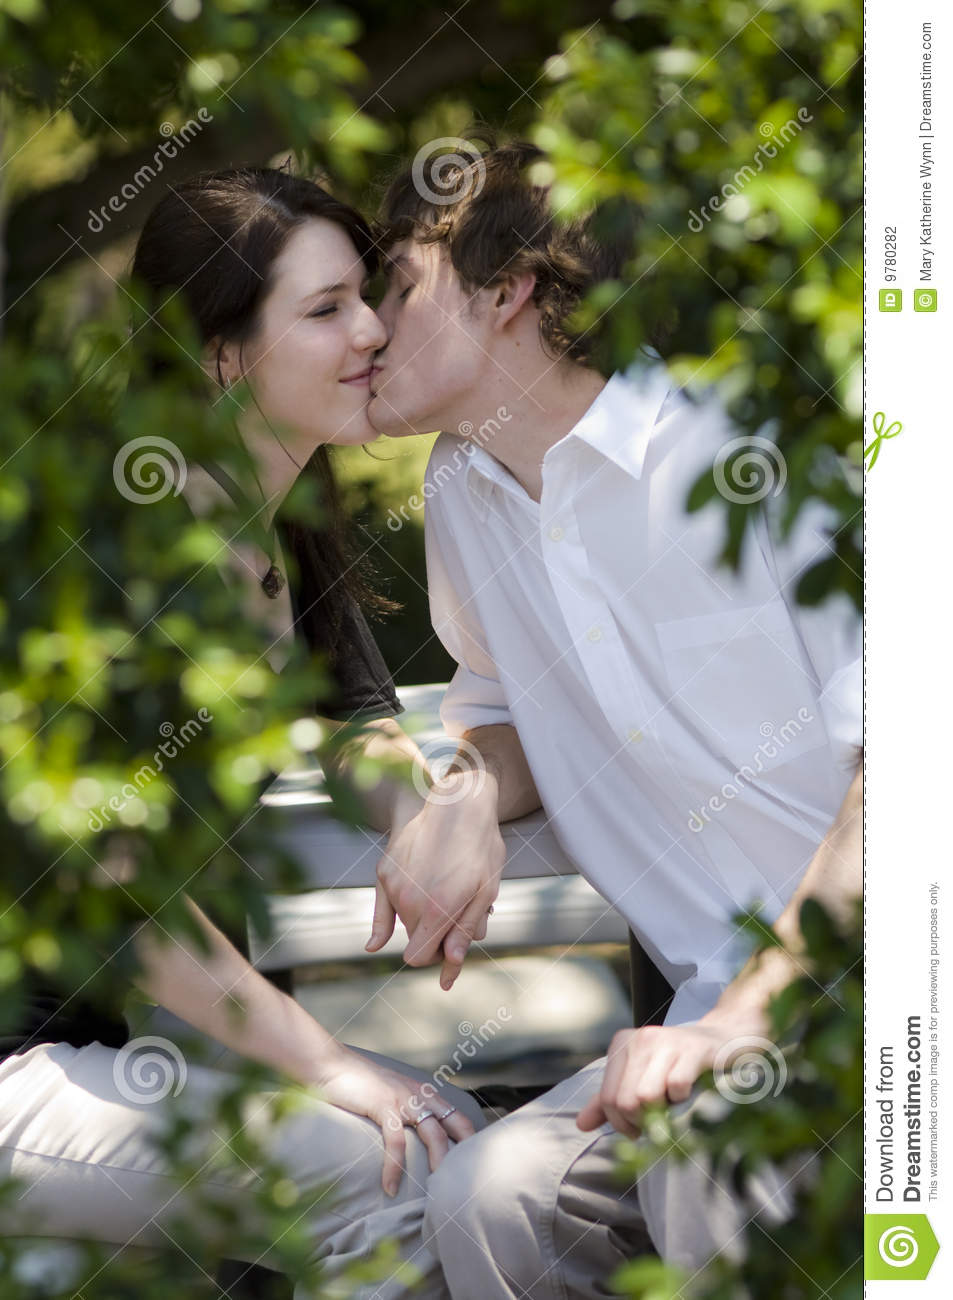 Teen couple kissing in park